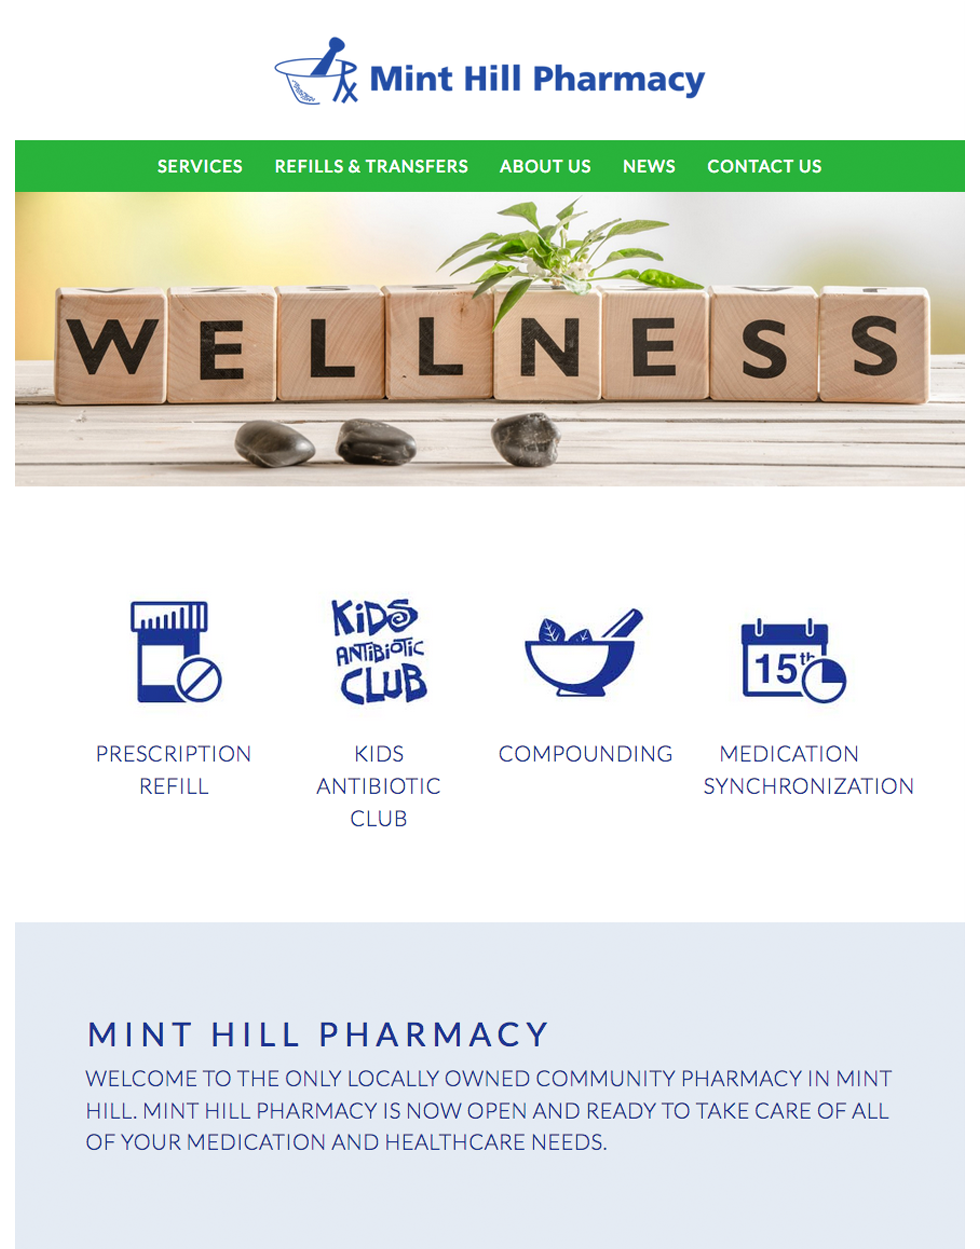 Mint Hill Pharmacy